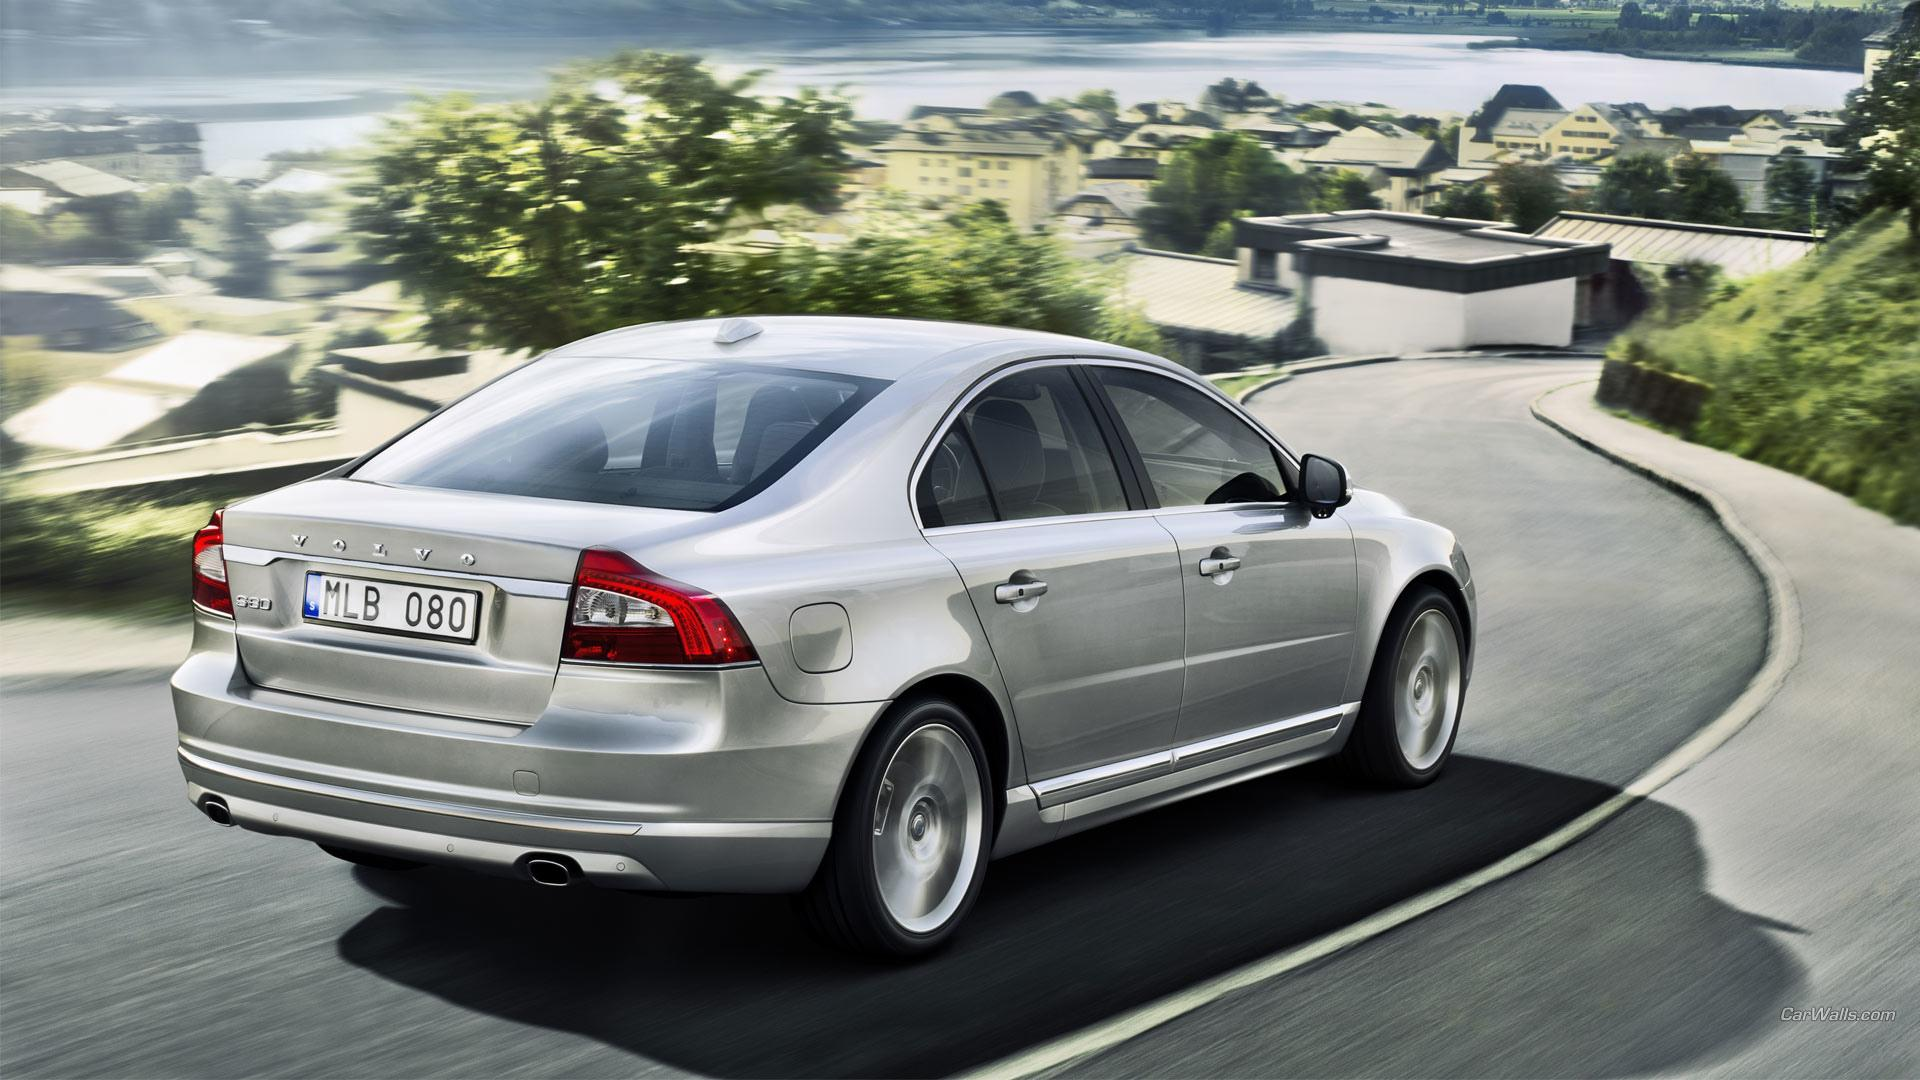 2014 Volvo S80 wallpapers HD quality